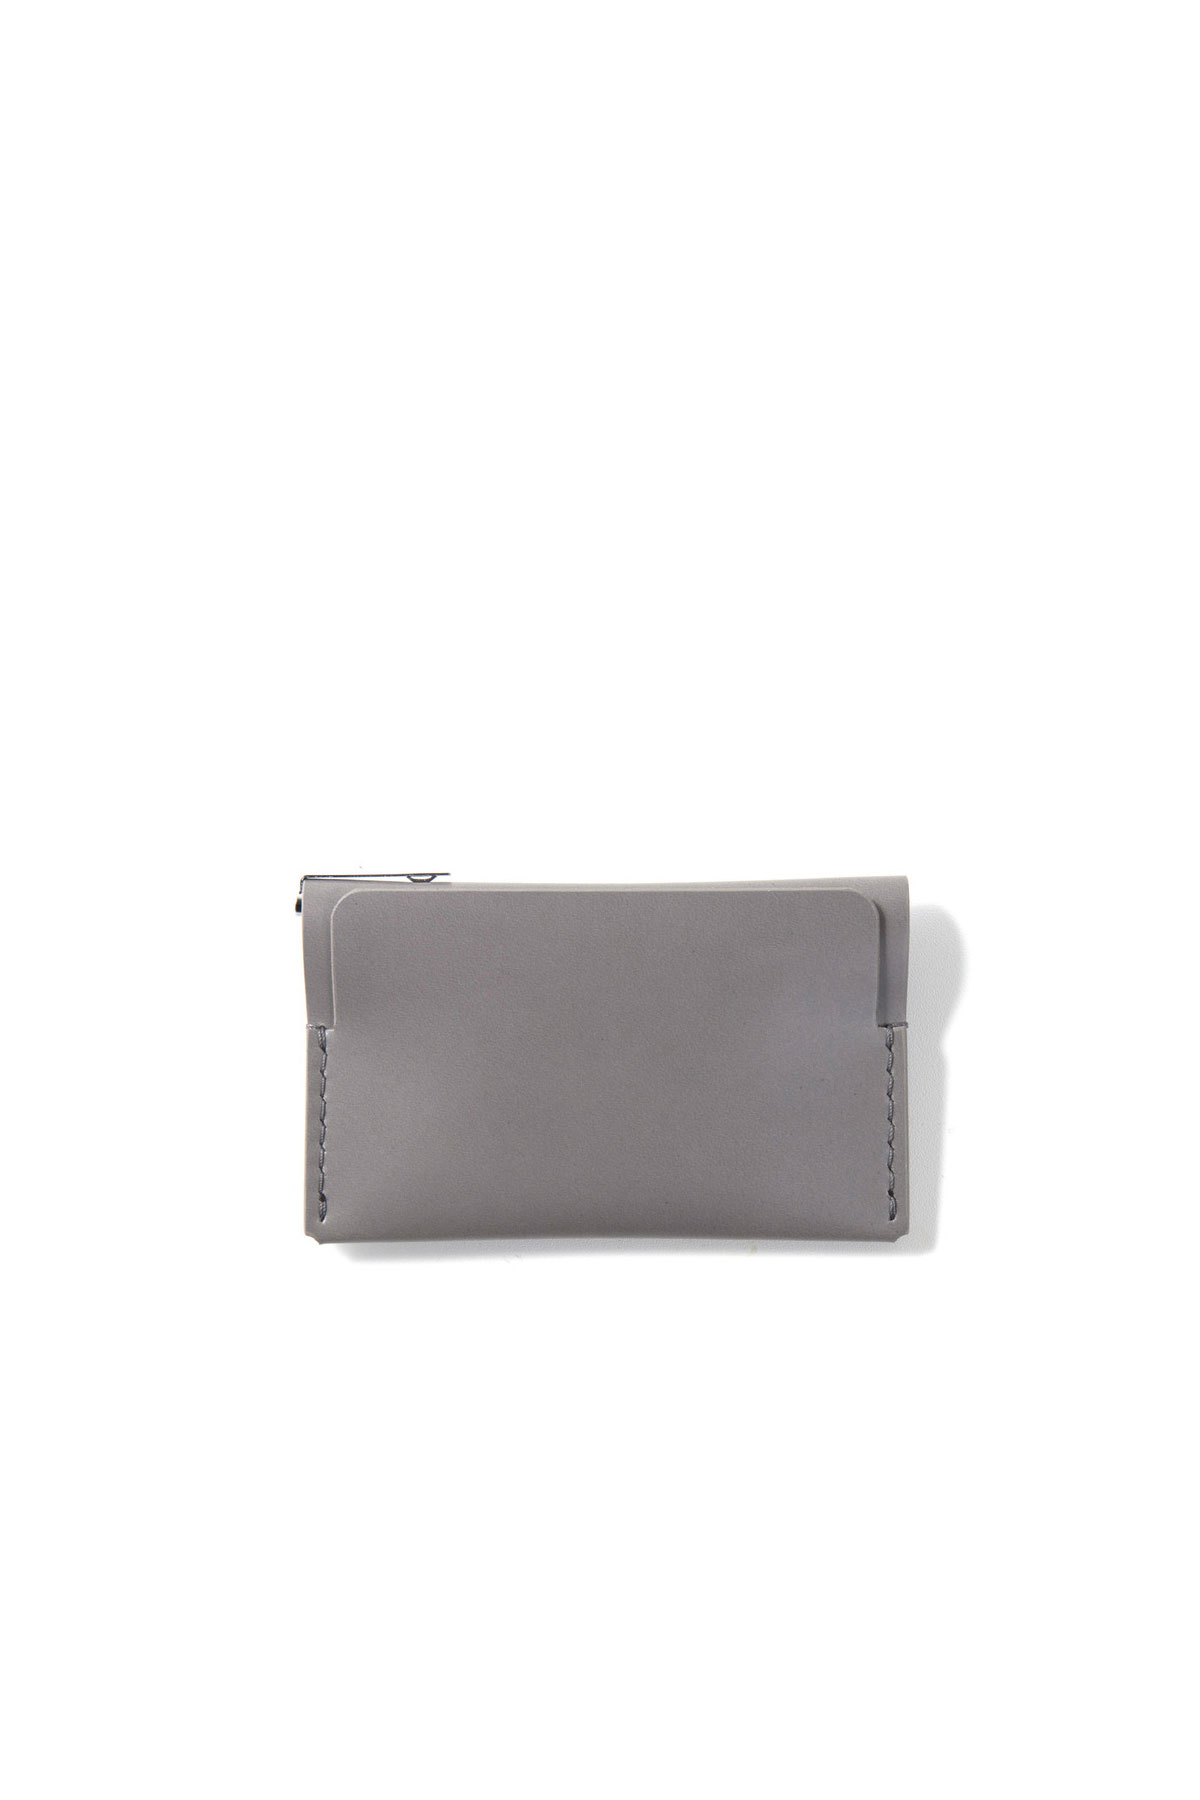 Blankof : WCL 03 T2 Backbend Card Case (Grey)